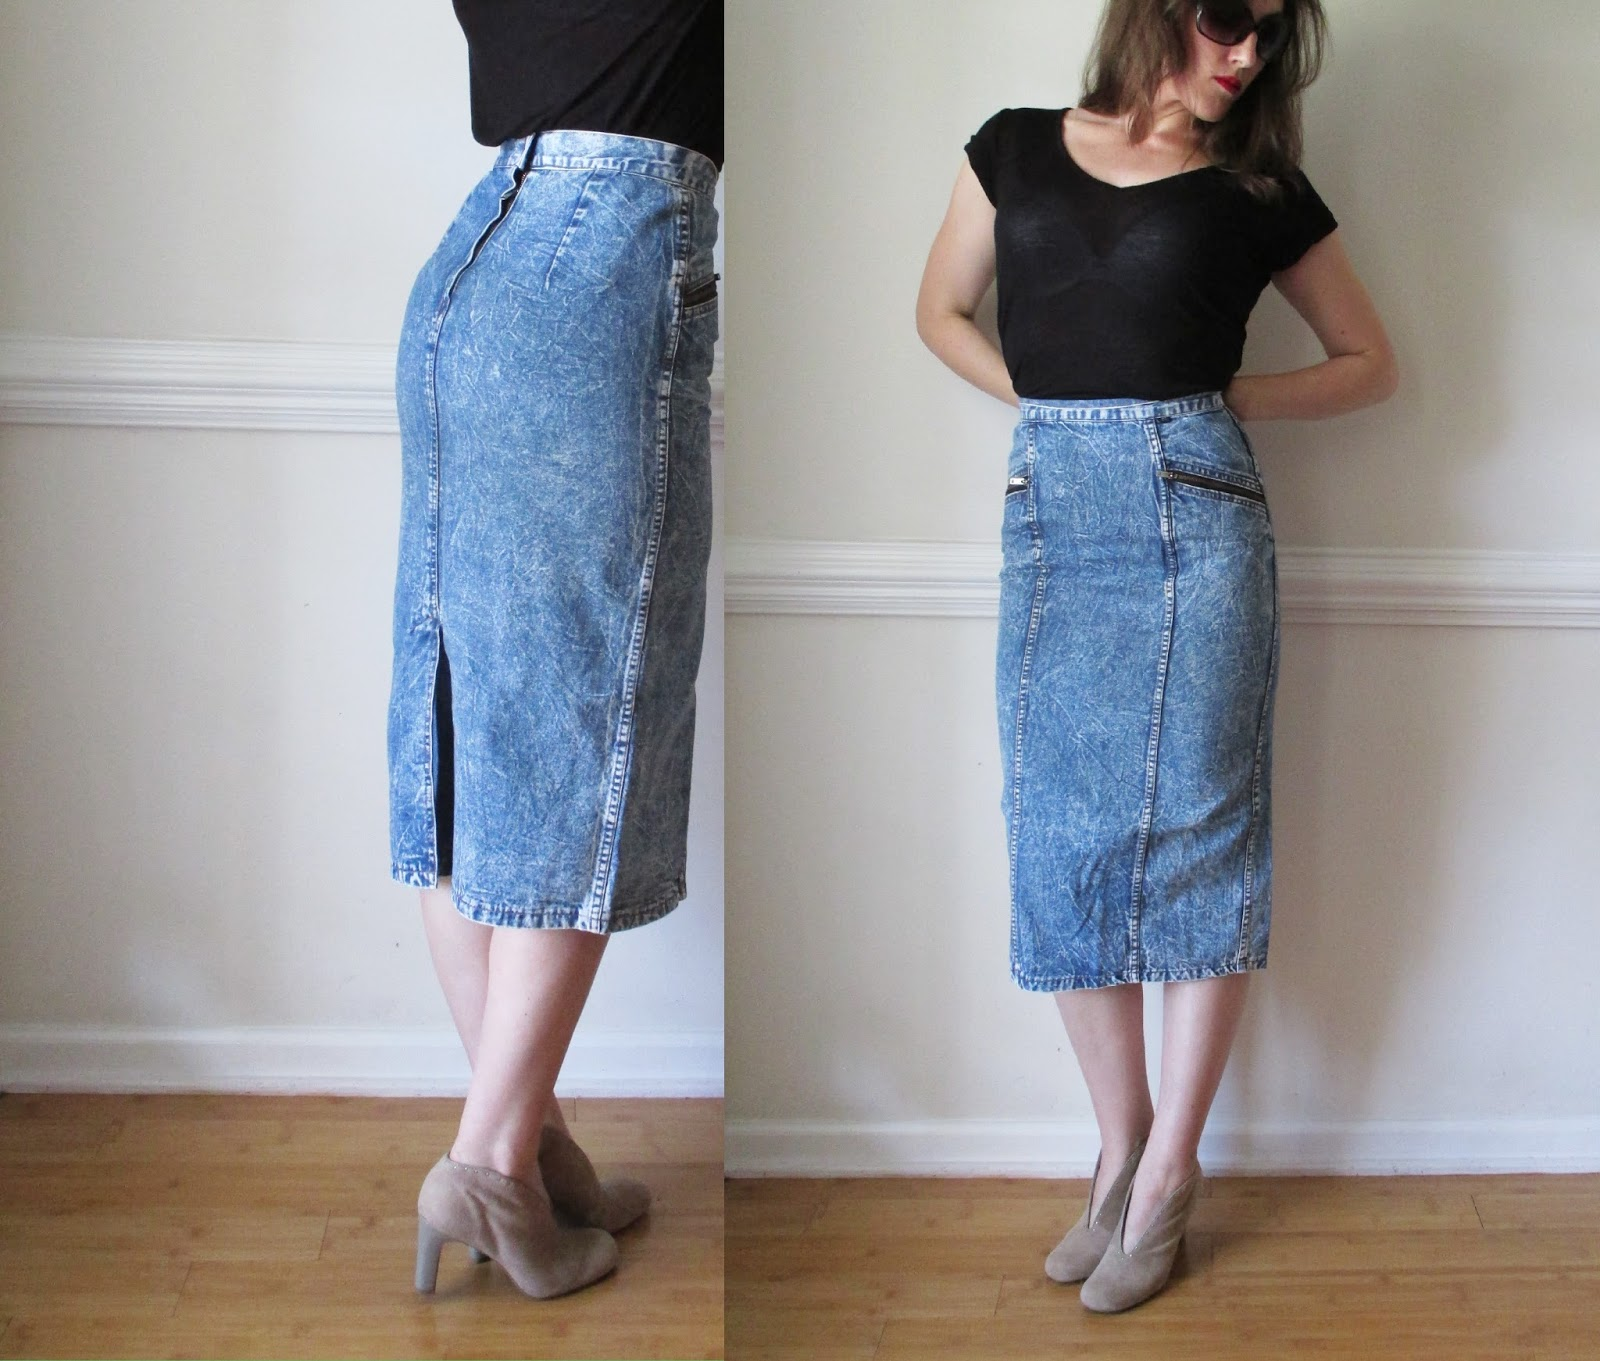 https://www.etsy.com/listing/208061309/80s-90s-high-waist-jean-pencil-skirt?ref=shop_home_active_24